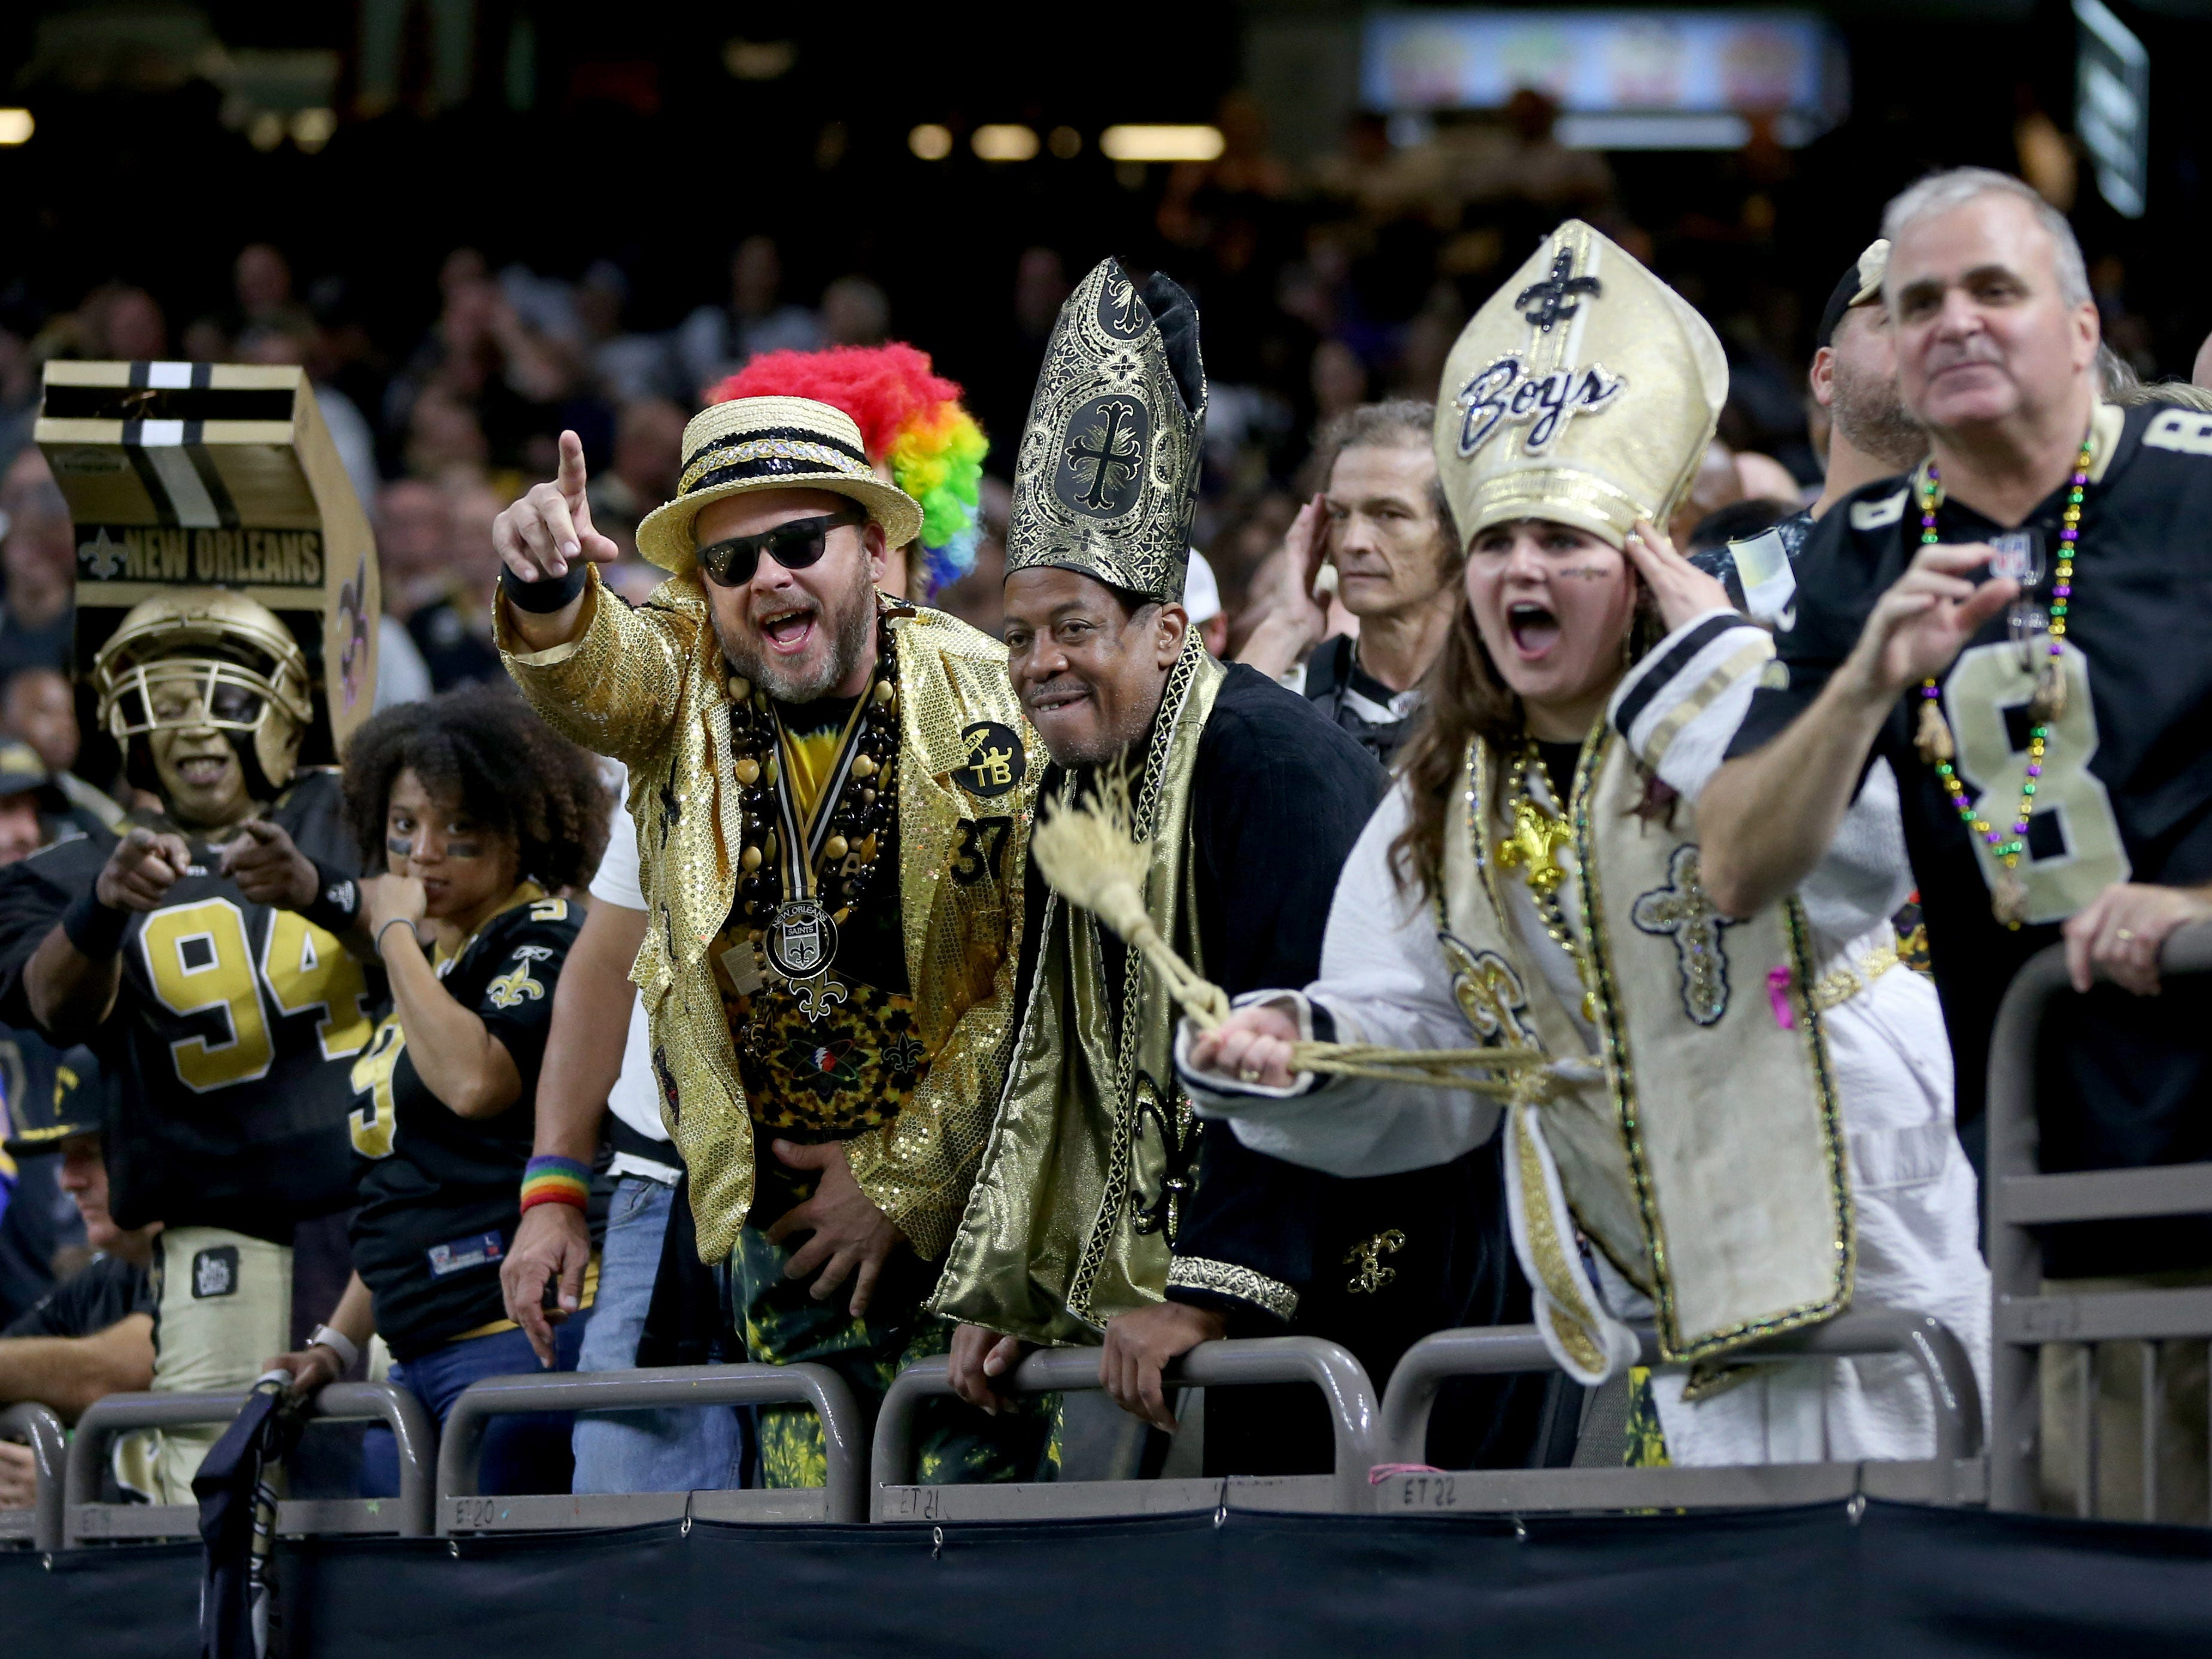 New Orleans Saints fans cheer during the second quarter of their game against the Los Angeles Rams at the Mercedes-Benz Superdome.